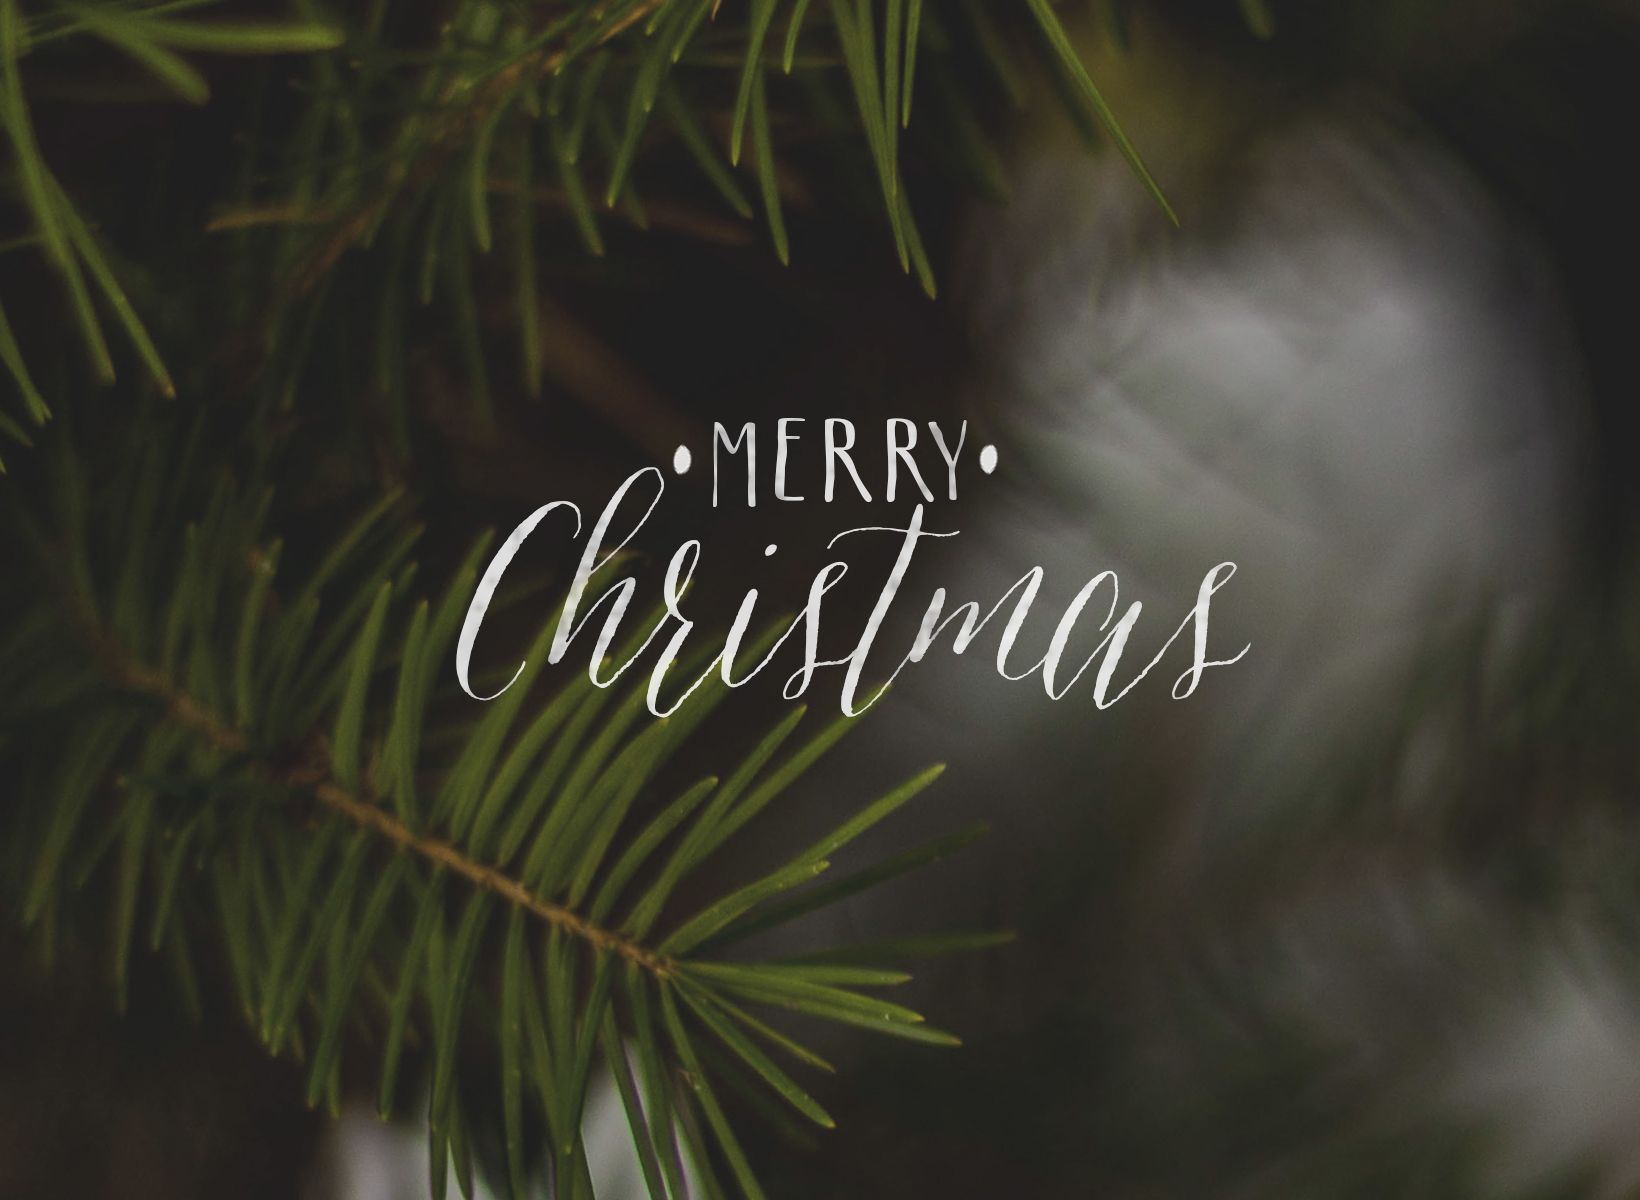 Merry Christmas 🎄 for all friends on the Pinterest team